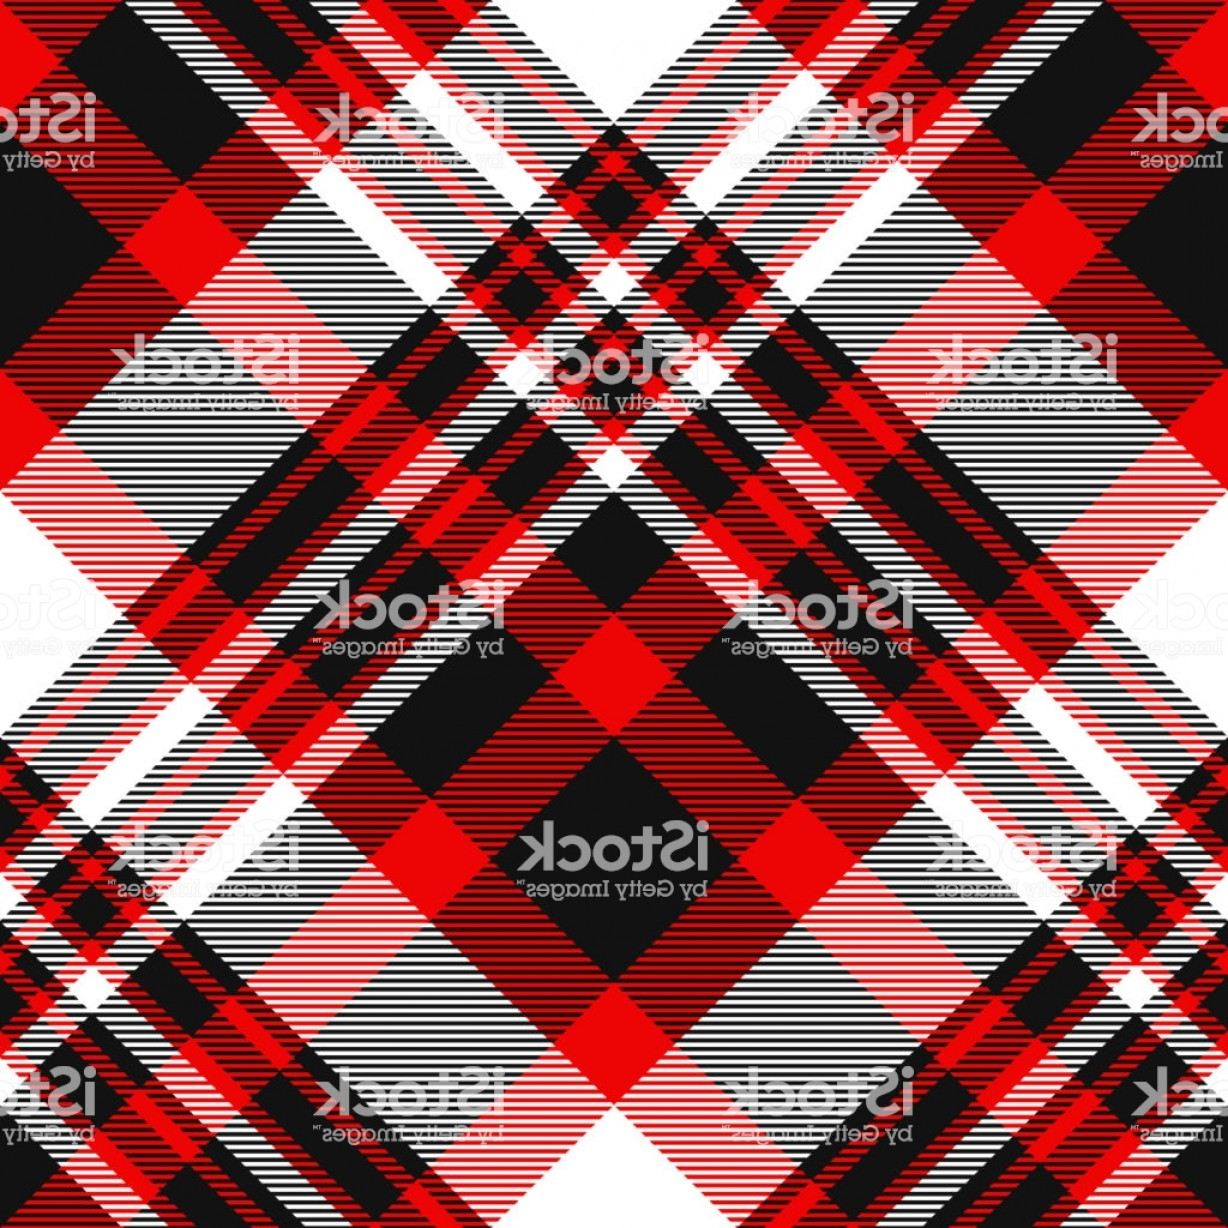 Red Black And White Vector Art: Seamless Tartan Plaid Pattern In Red Black And White Gm